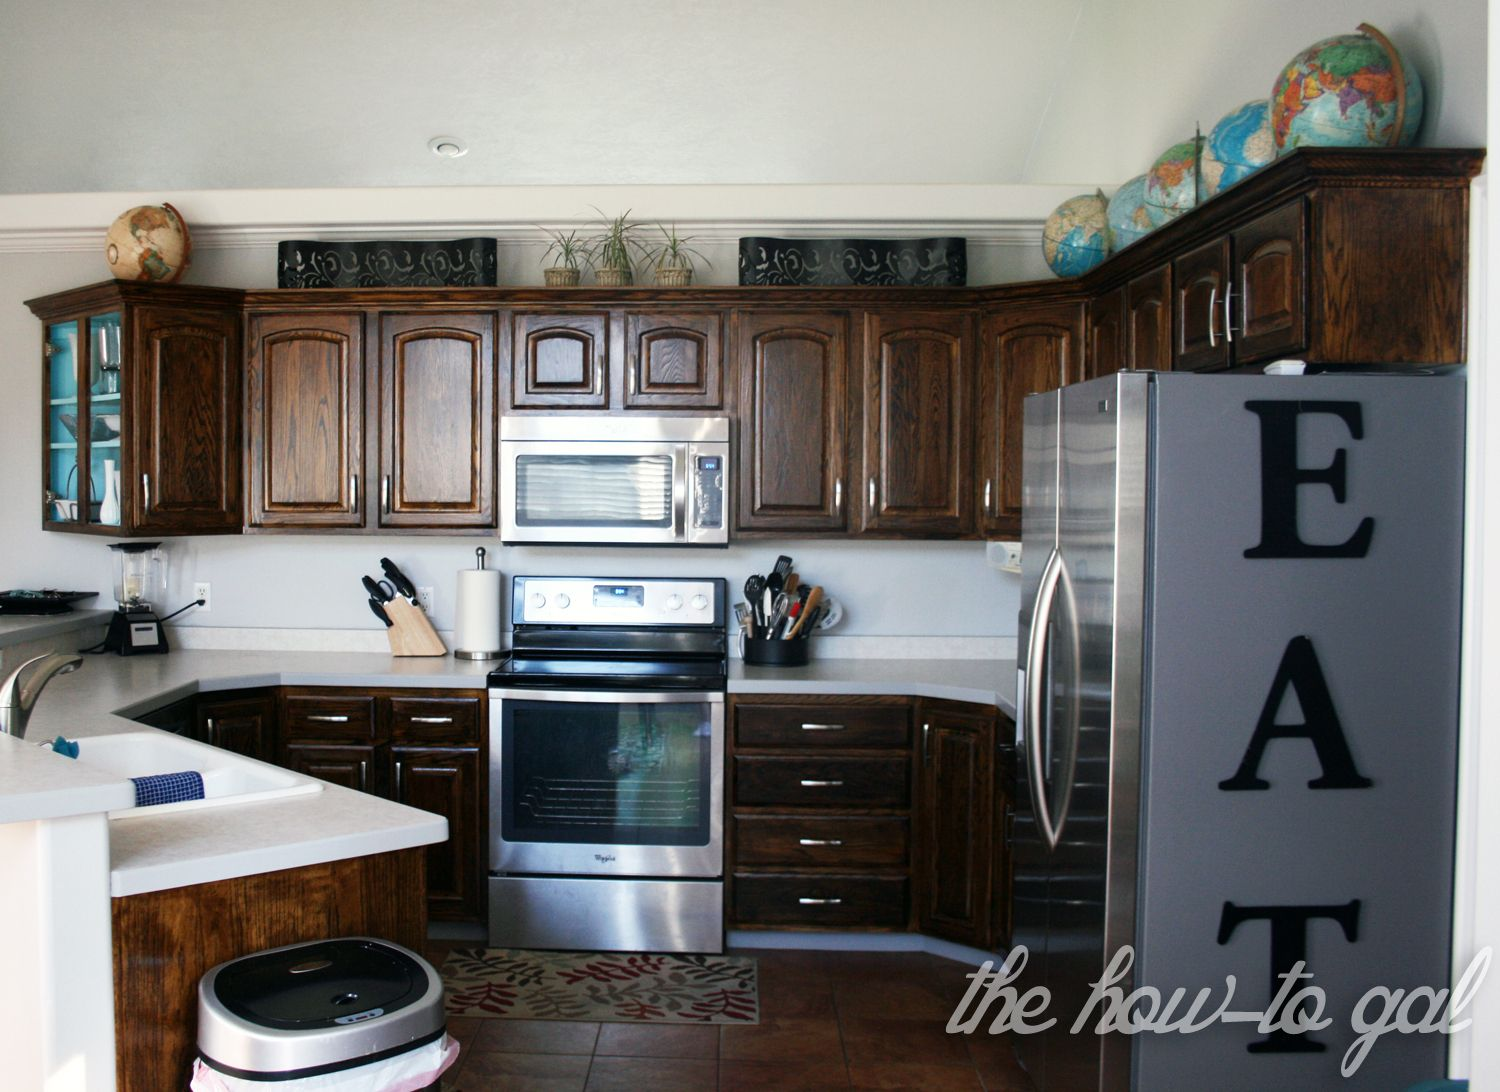 How To Refinish Kitchen Cabinets - Refinish kitchen cabinets, Kitchen cabinets, Kitchen redo, Kitchen decor, Kitchen remodel, Black kitchen cabinets - Revamp your kitchen When we first walked through our now, new home, I fell in love with the kitchen  The open layout was one of the best we'd seen and the counter space and cabinets were plentiful  I loved that it was closed off from the front of the house but open to the dining area  I especially loved that I could look out the window while washing the dishes  The only thing I didn't love was how the cabinet color and appliances dated the space  But I knew with a little bit of love, it could be my dream kitchen